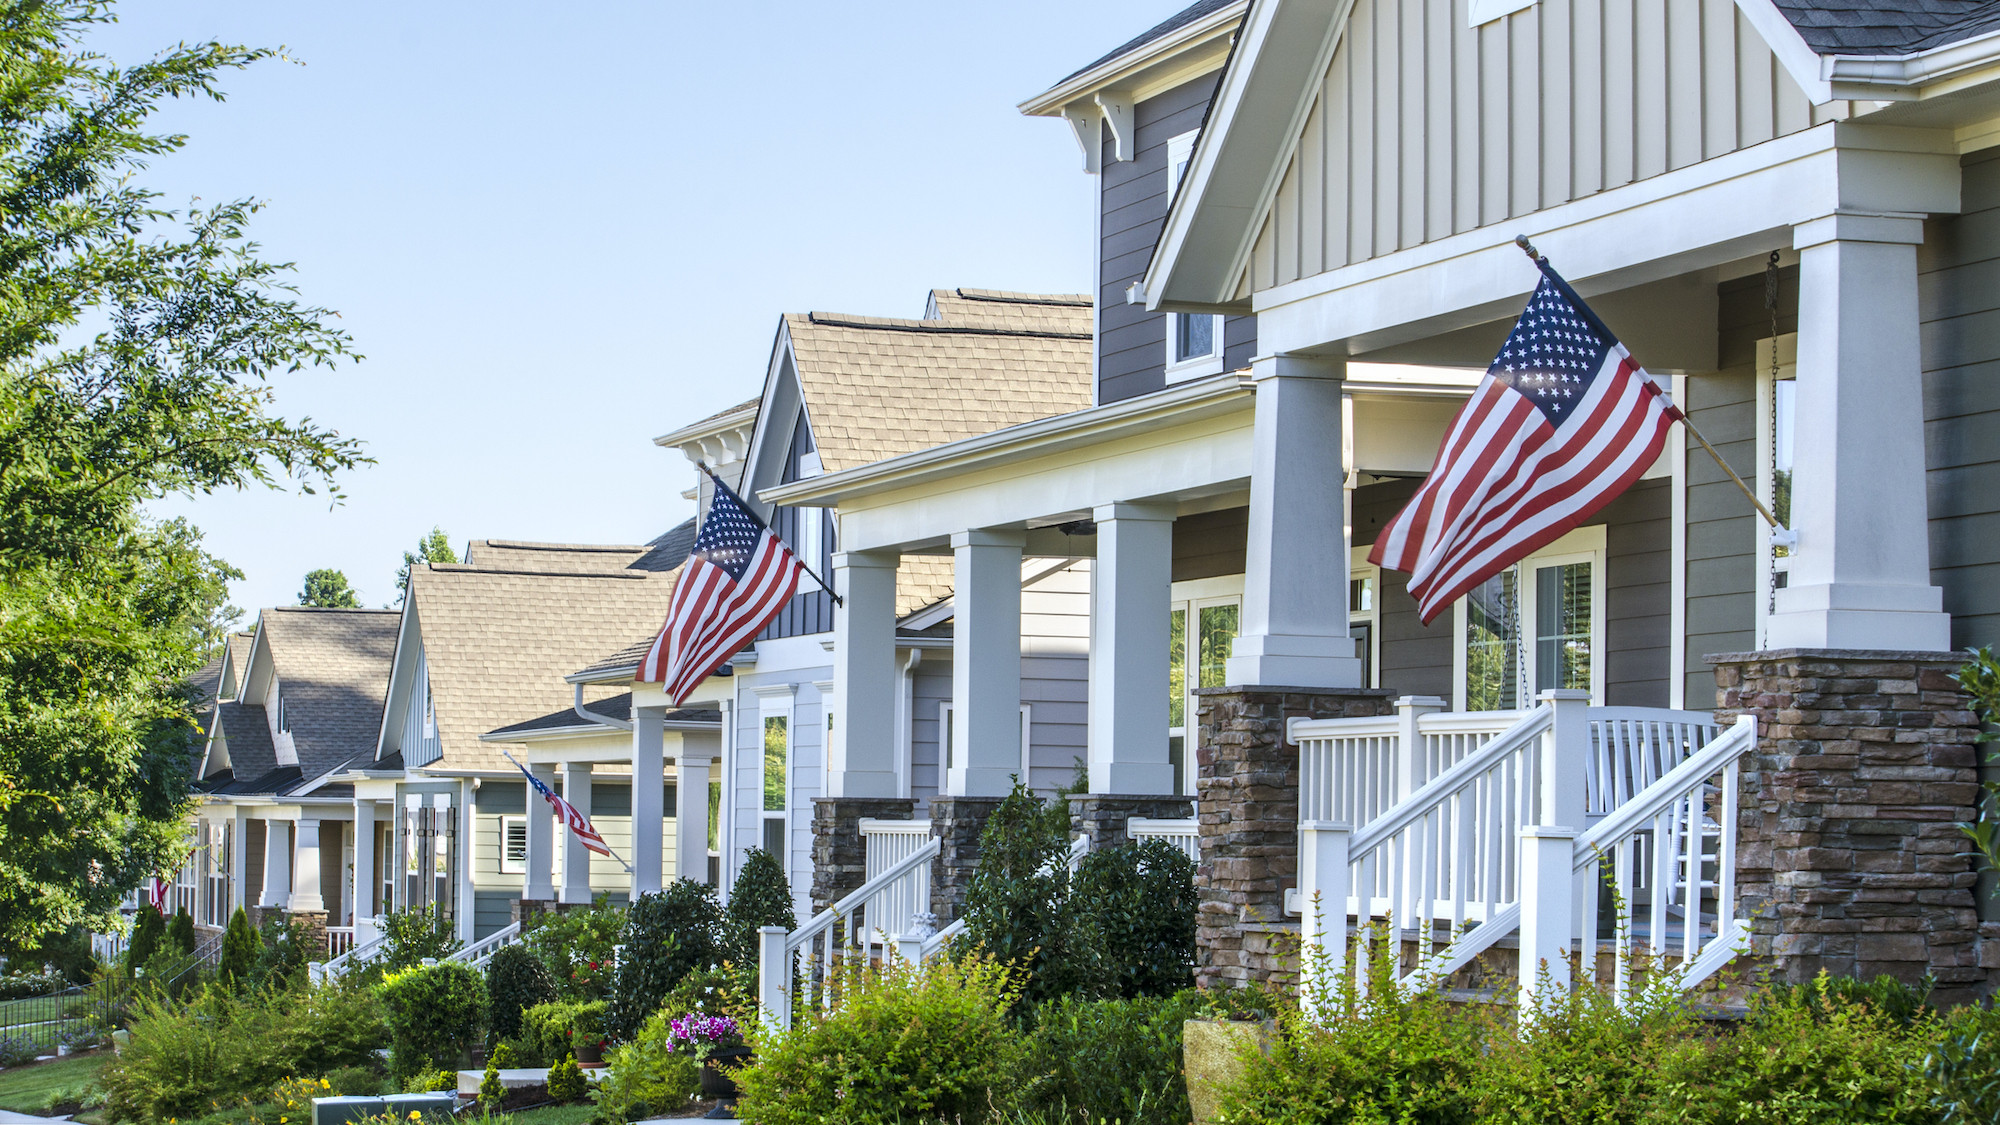 Suburban homes with flags